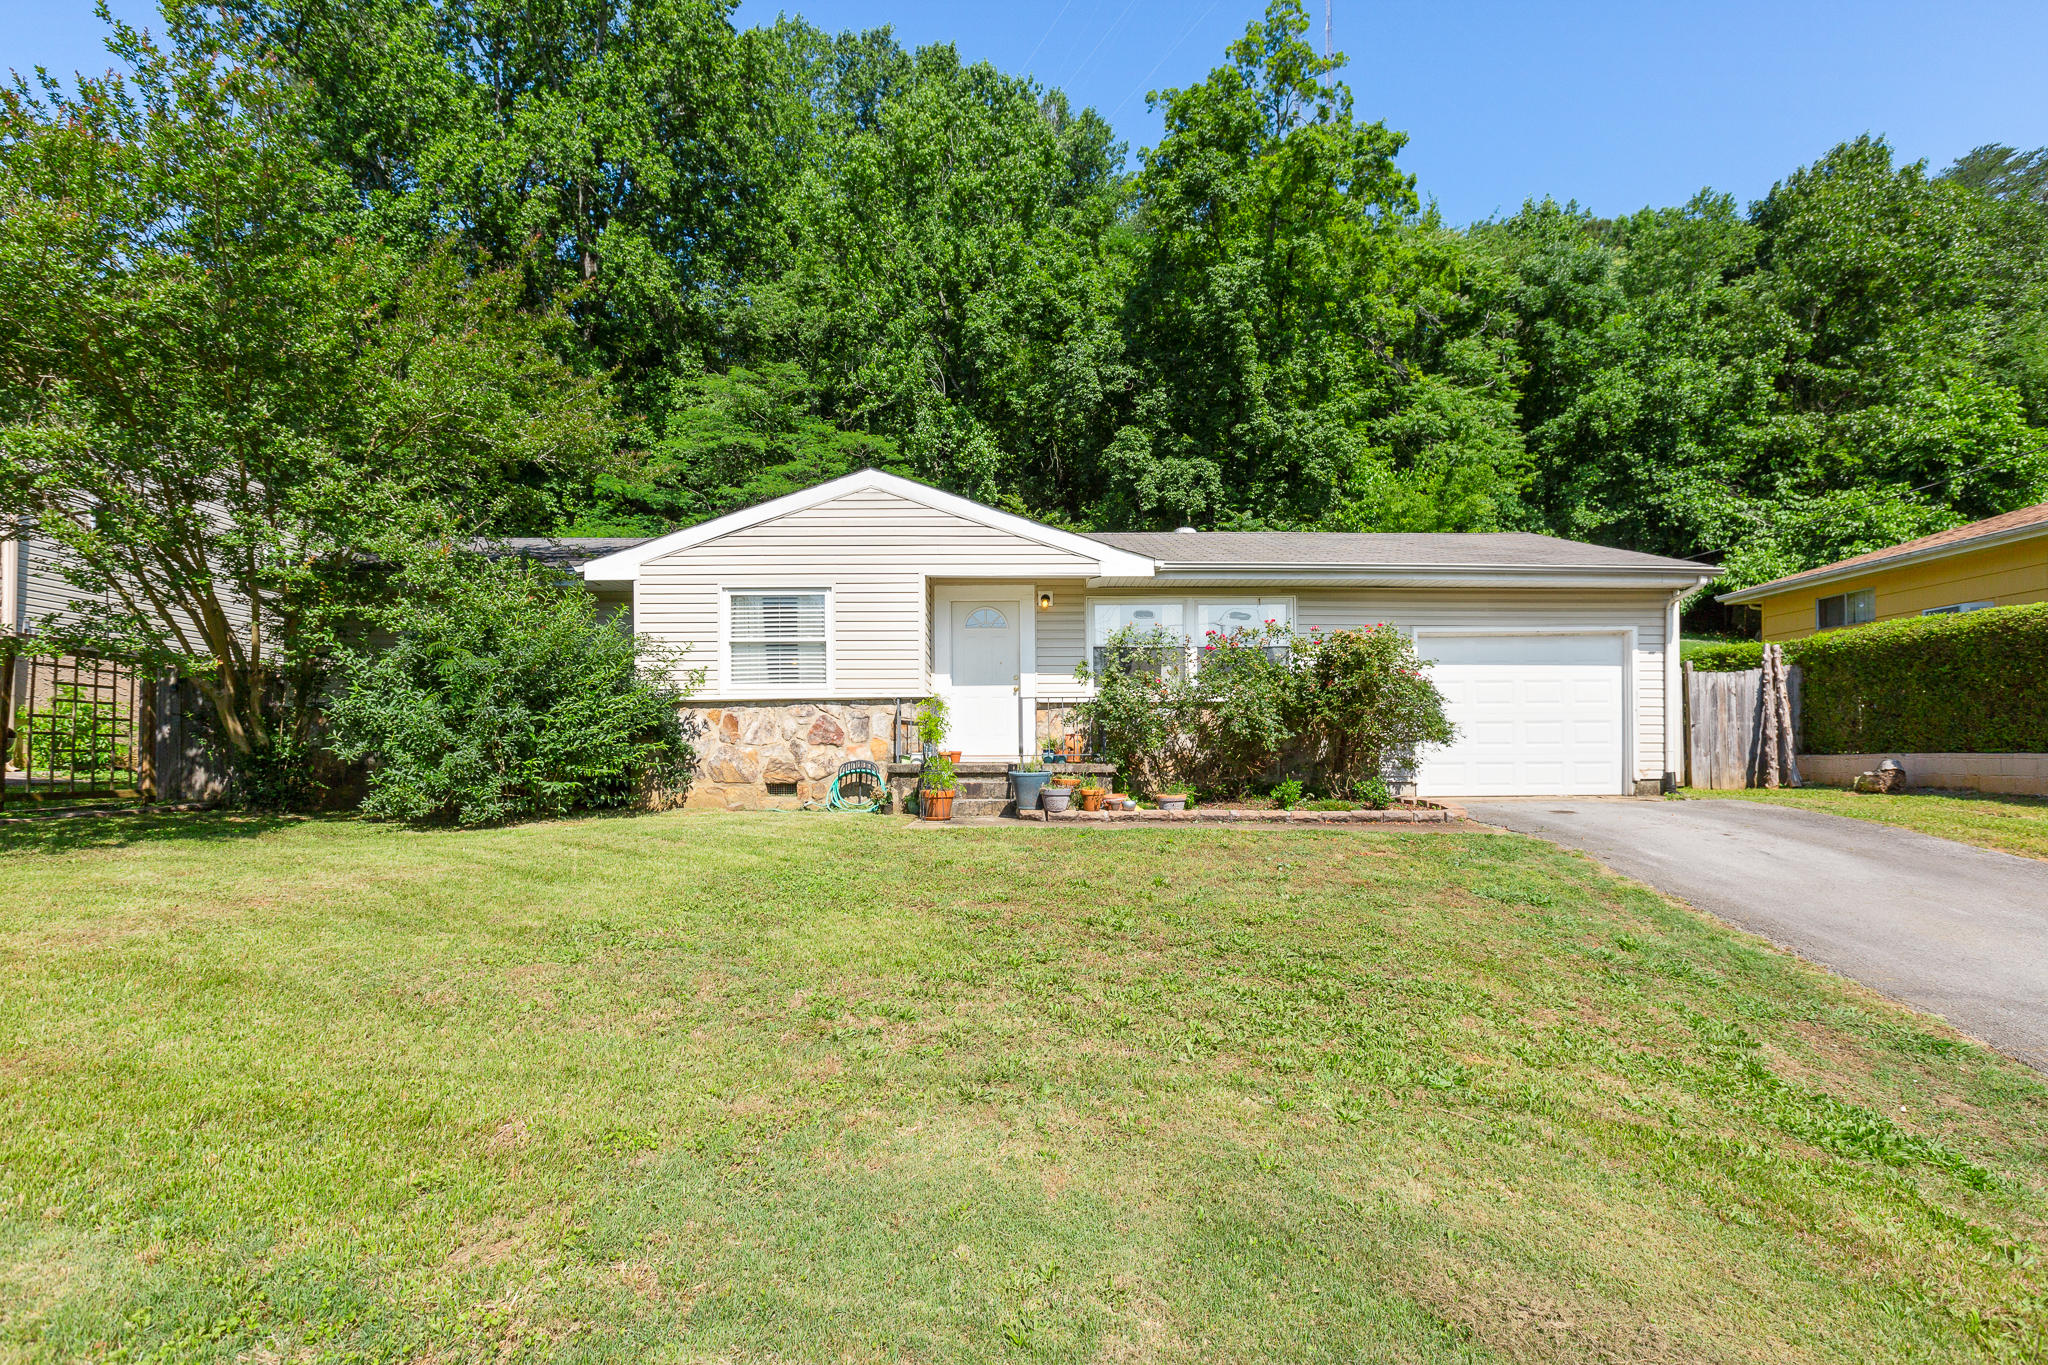 4209 Oakland Ter, Chattanooga, Tennessee